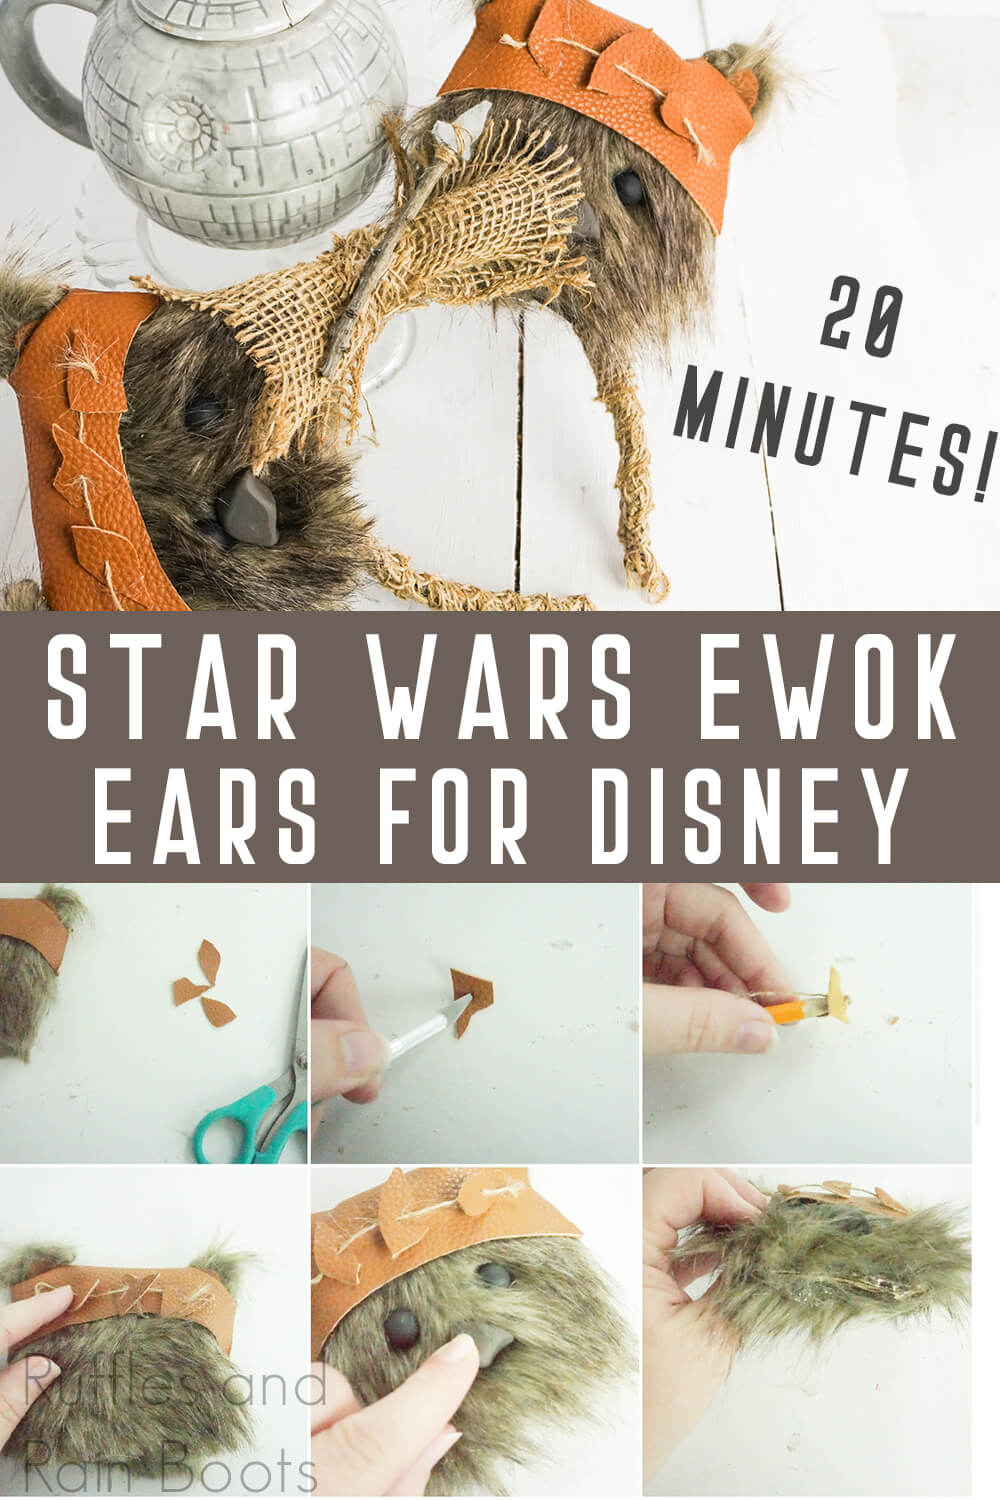 photo collage of how to make star wars galaxy's edge mickey ears ewoks with text which reads star wars ewok ears for disney 20 minutes!